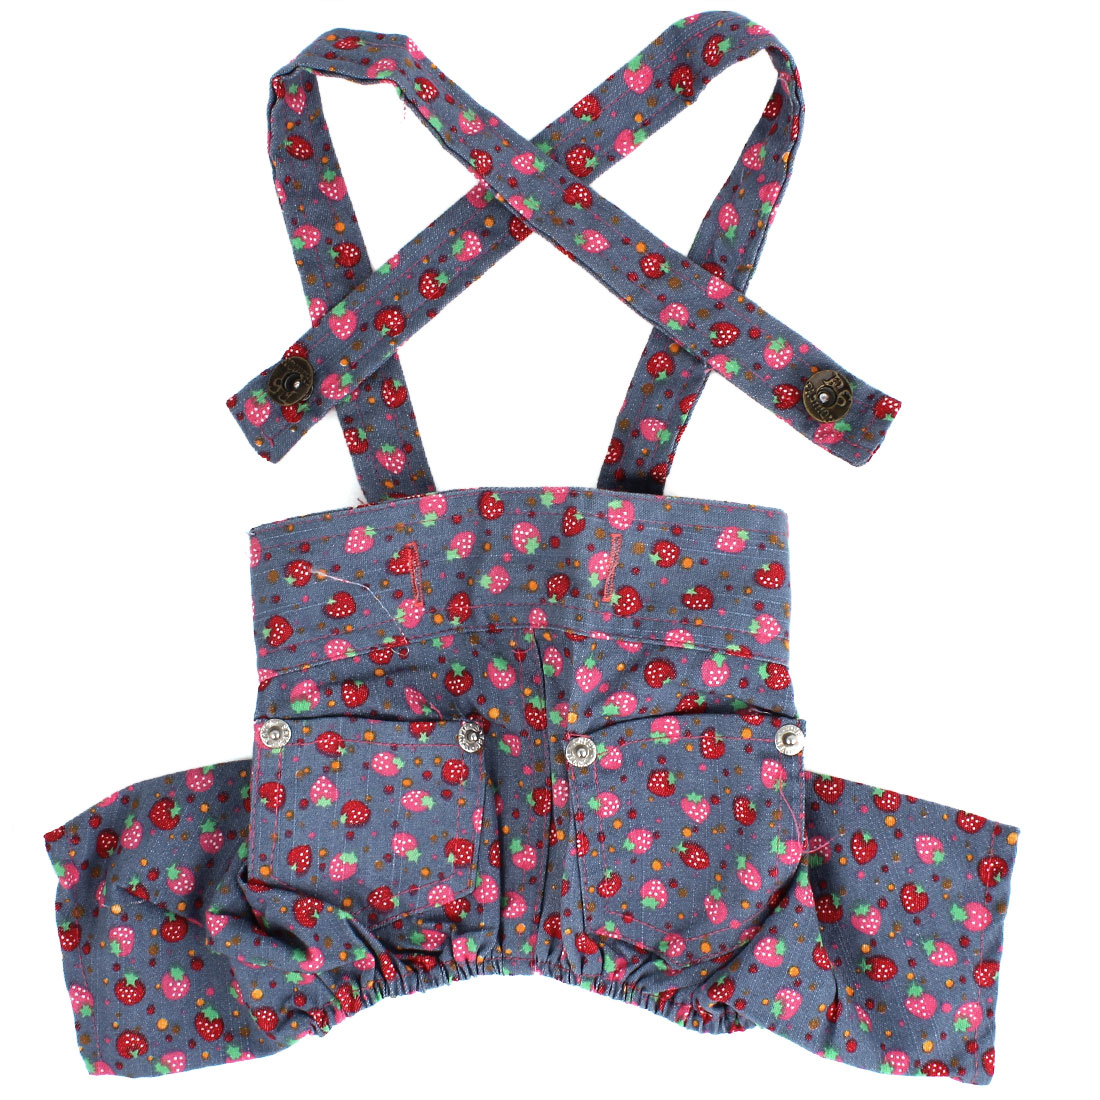 Hoop Loop Closure Strawberry Pattern Pet Puppy Dog Suspender Pants Denim Jeans Clothes Size S